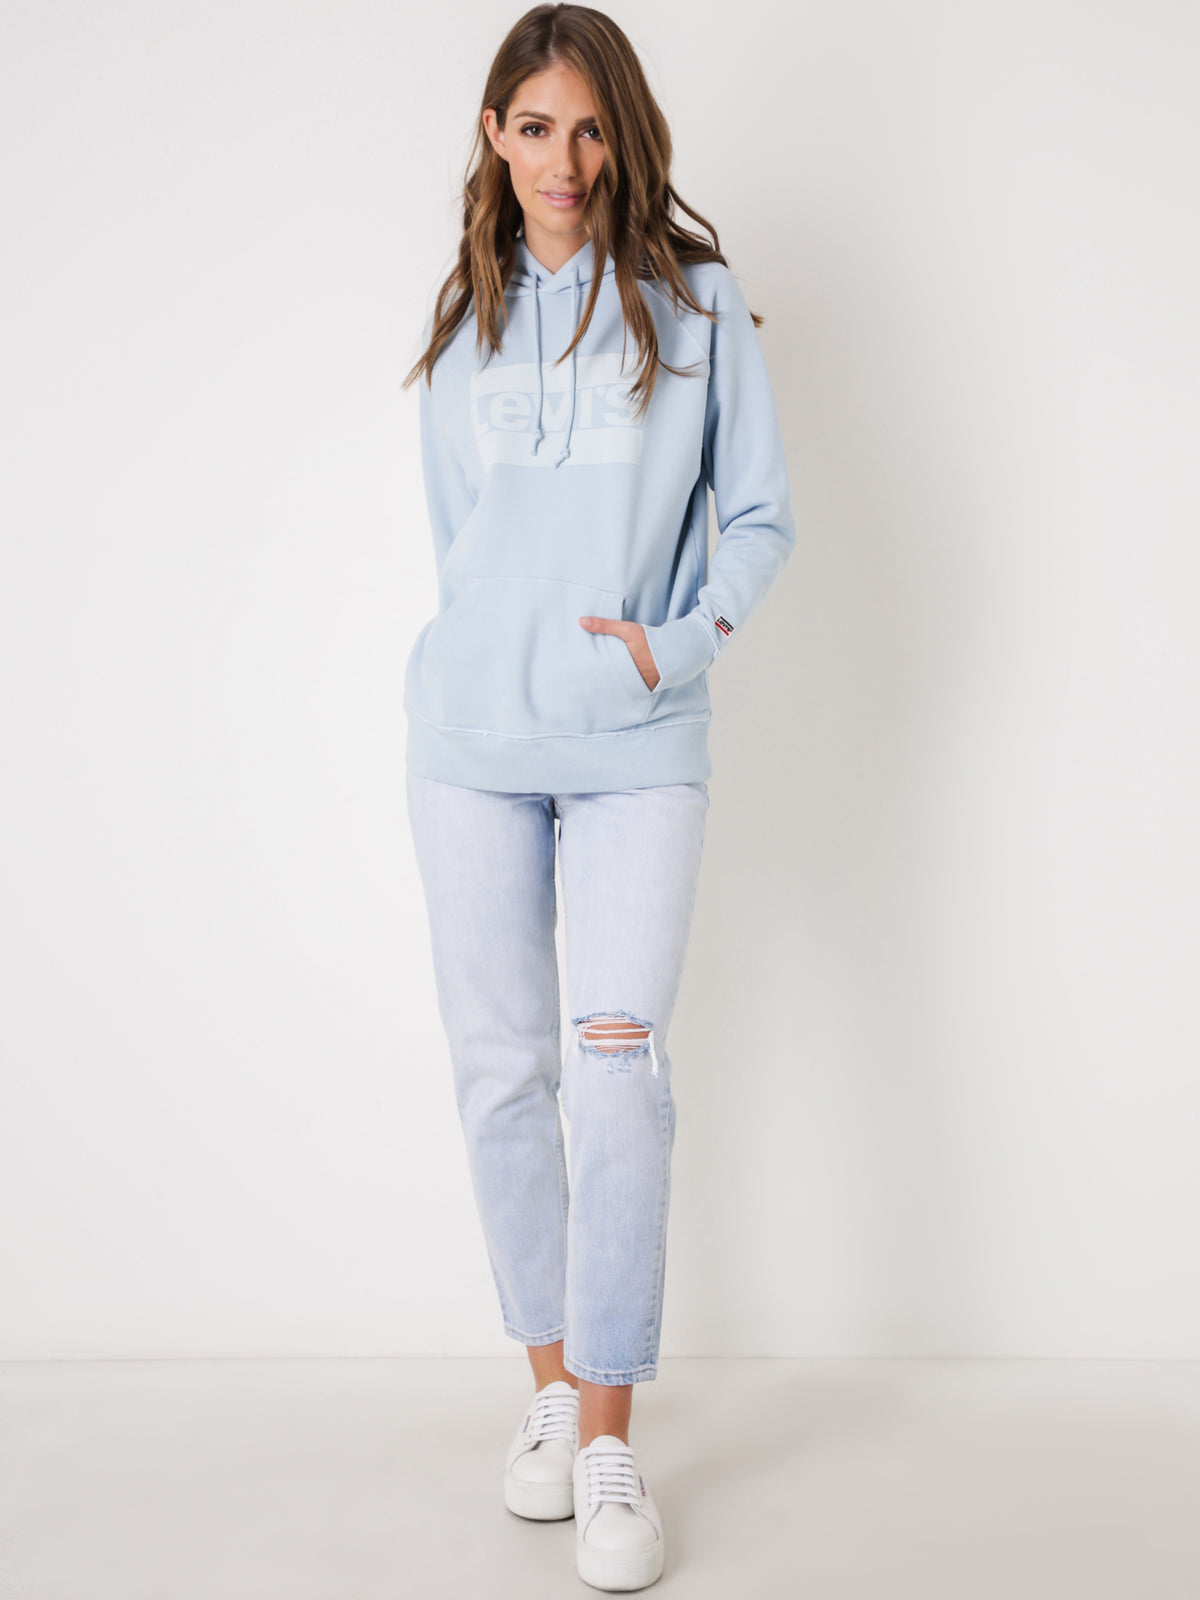 High Rise Mom Jeans in Blue Donna Martin Denim